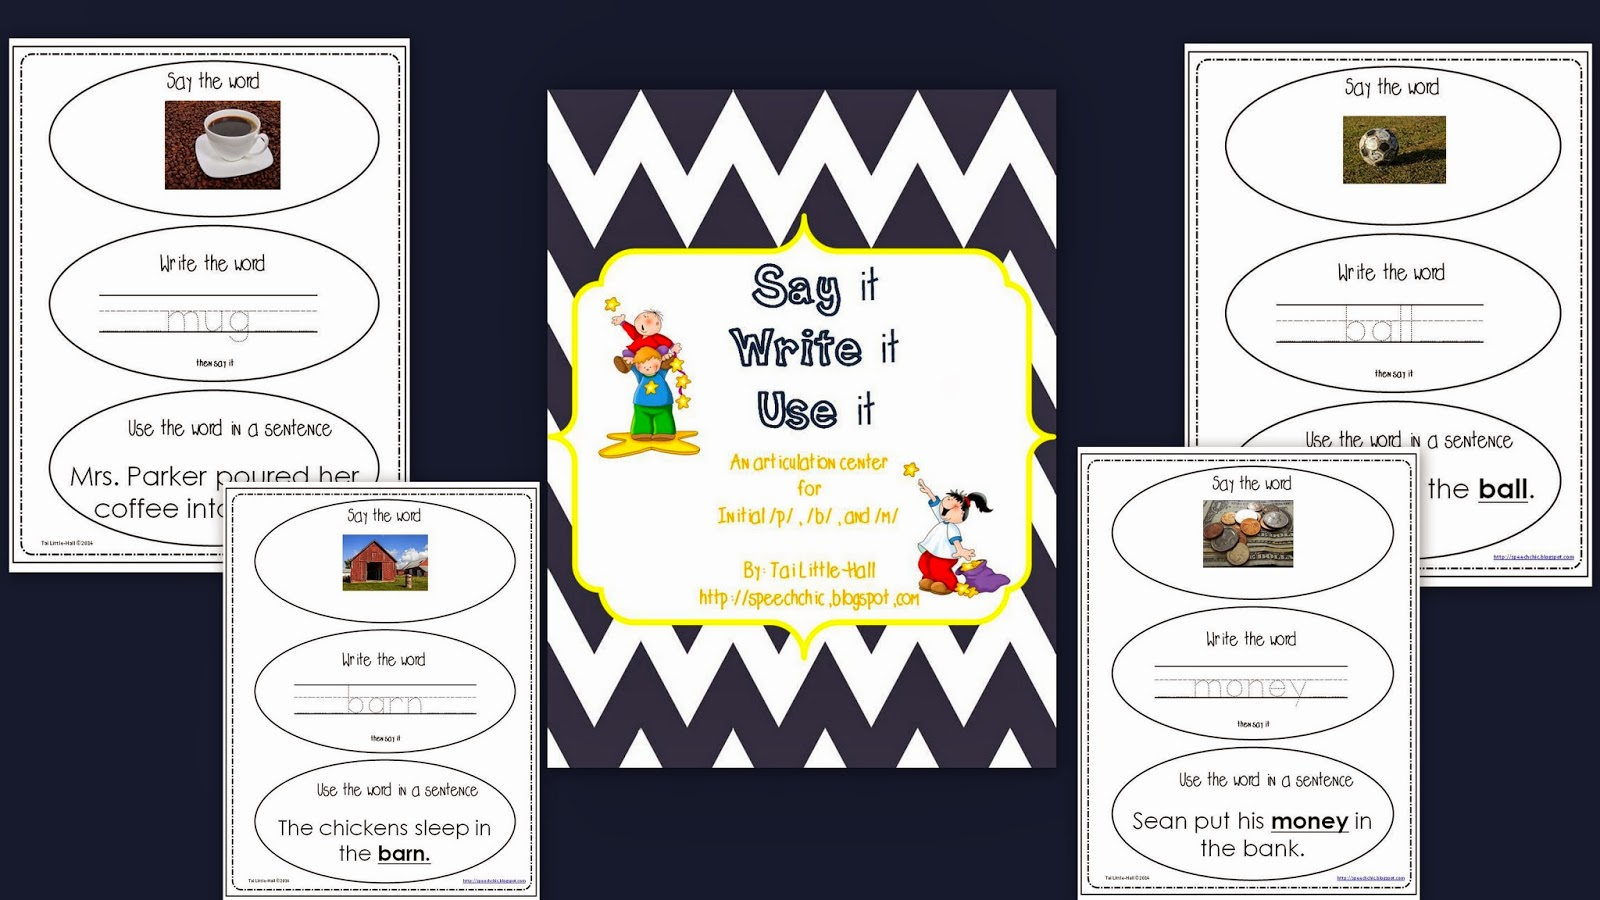 http://www.teacherspayteachers.com/Product/An-Articulation-Center-for-Initial-p-b-and-m-1095491